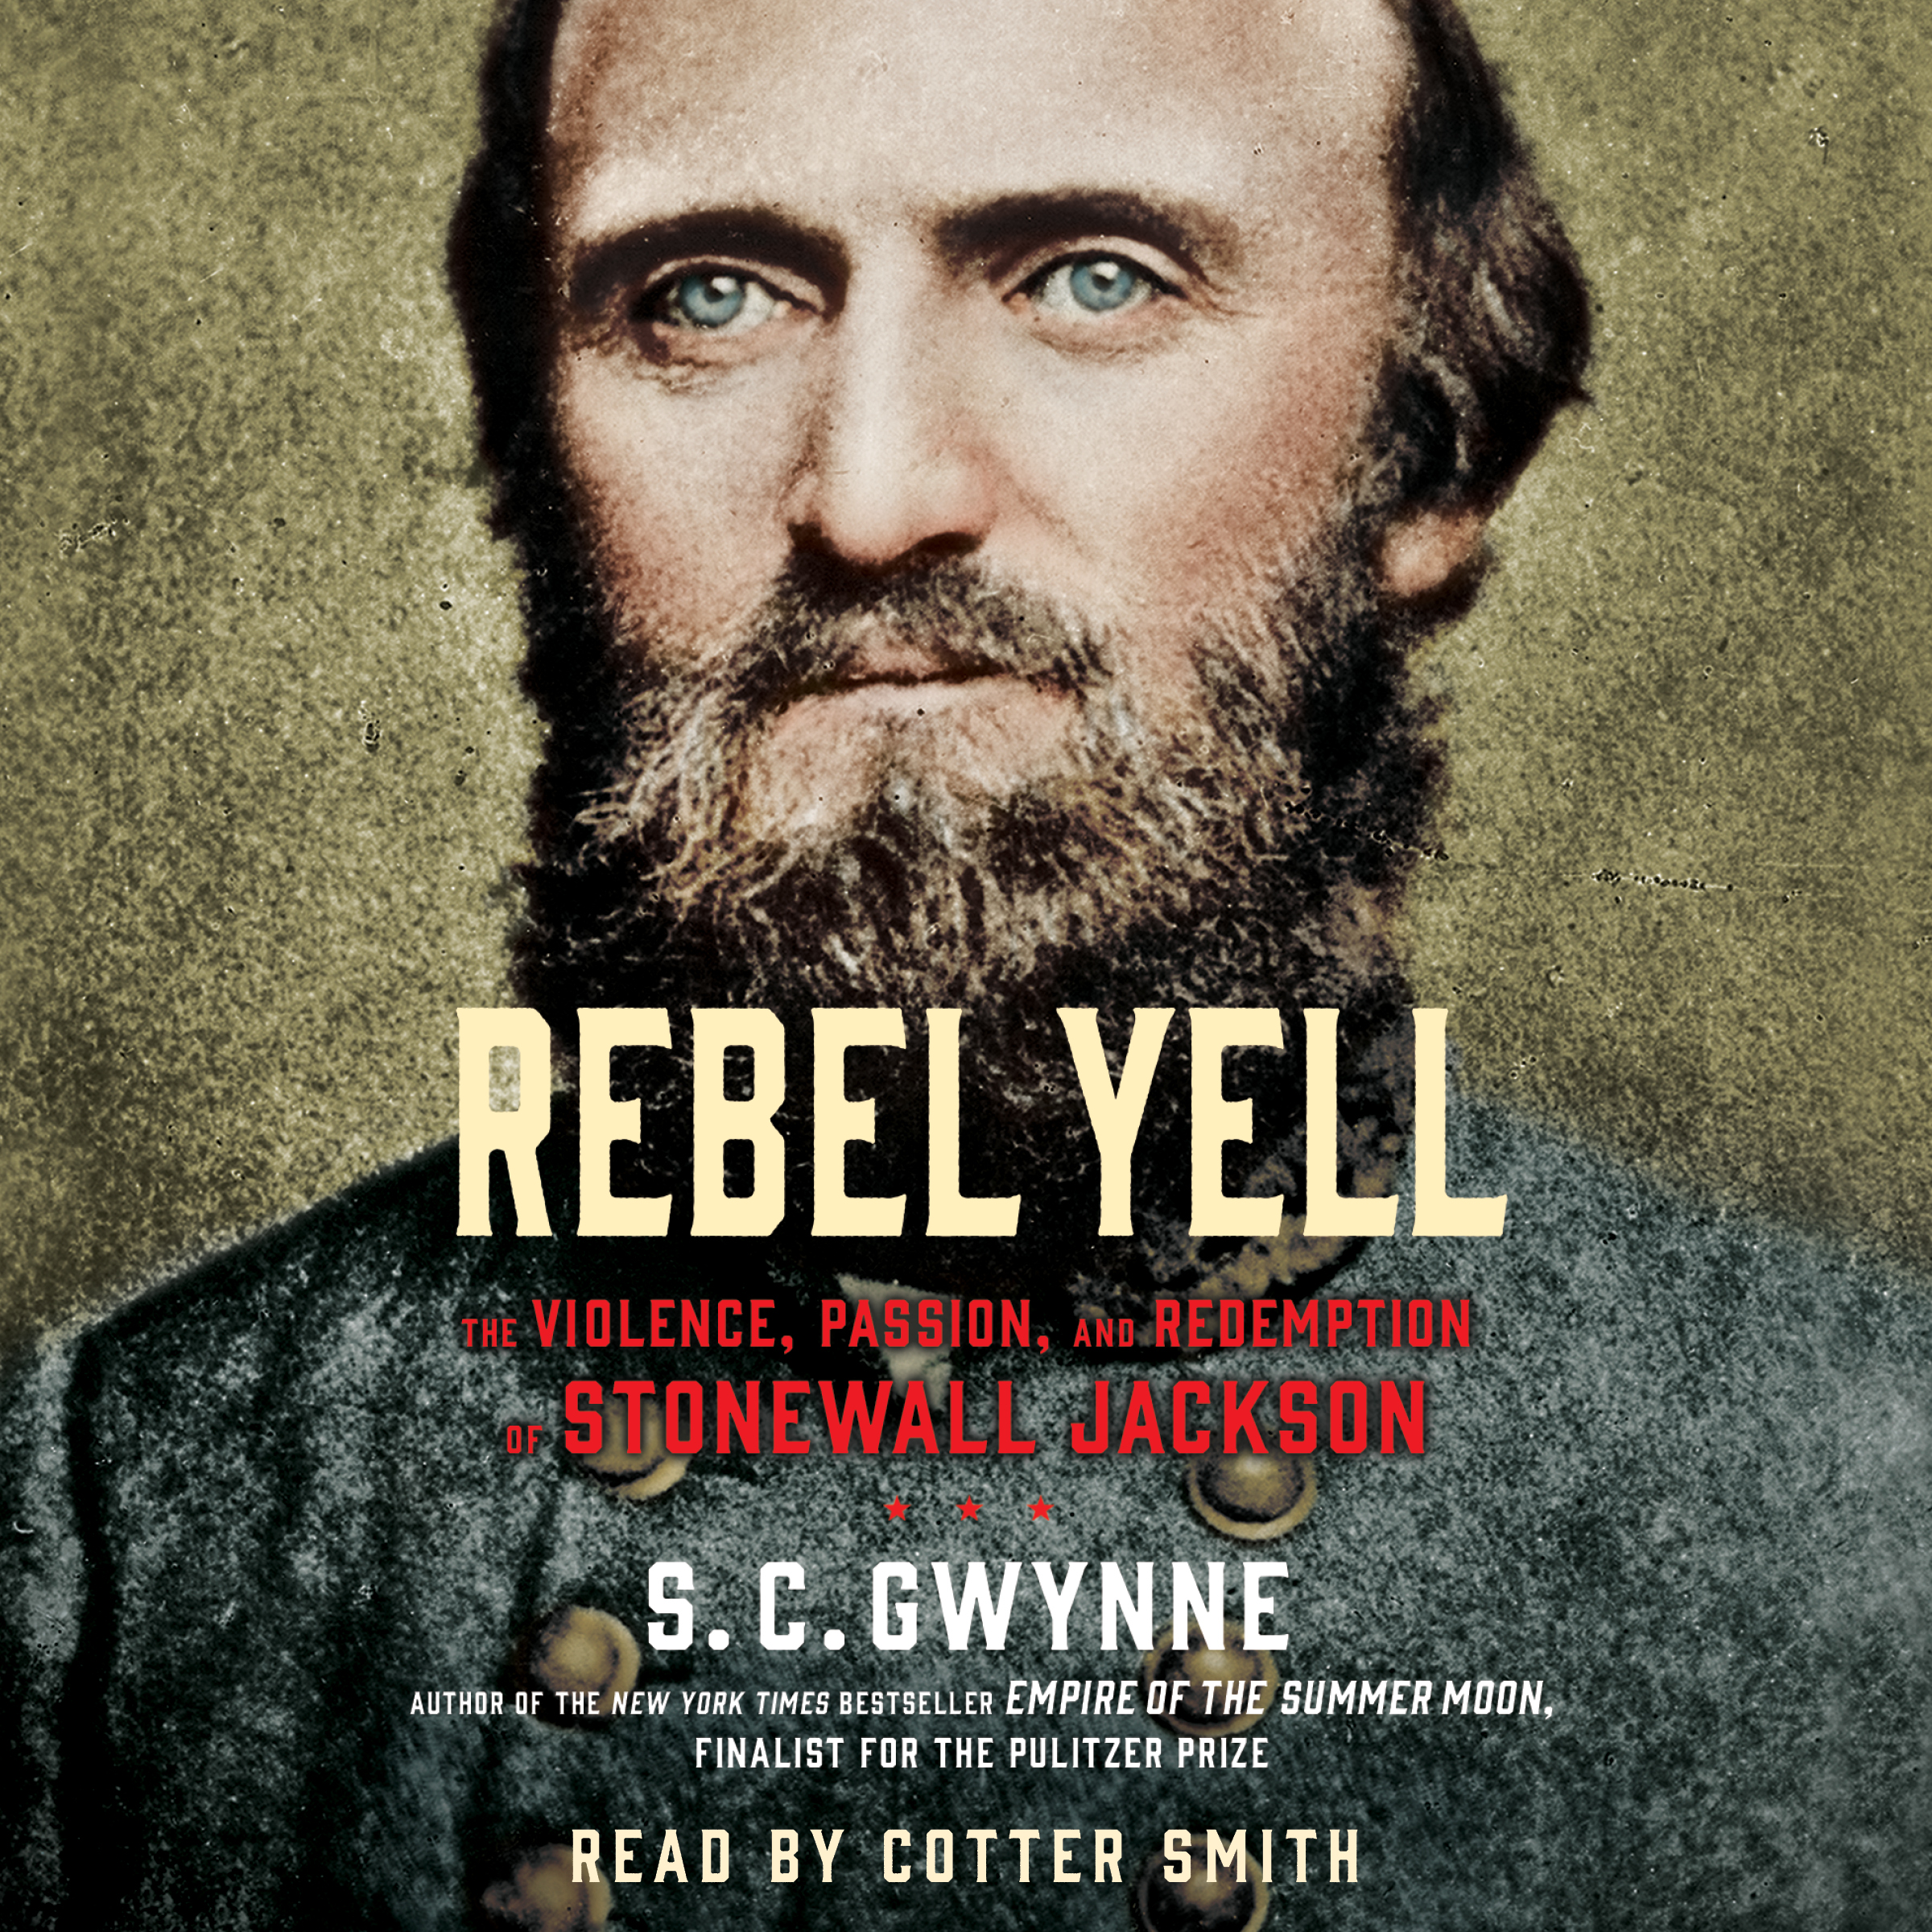 Rebel Yell Audiobook by S. C. Gwynne, Cotter Smith | Official Publisher Page | Simon & Schuster ...